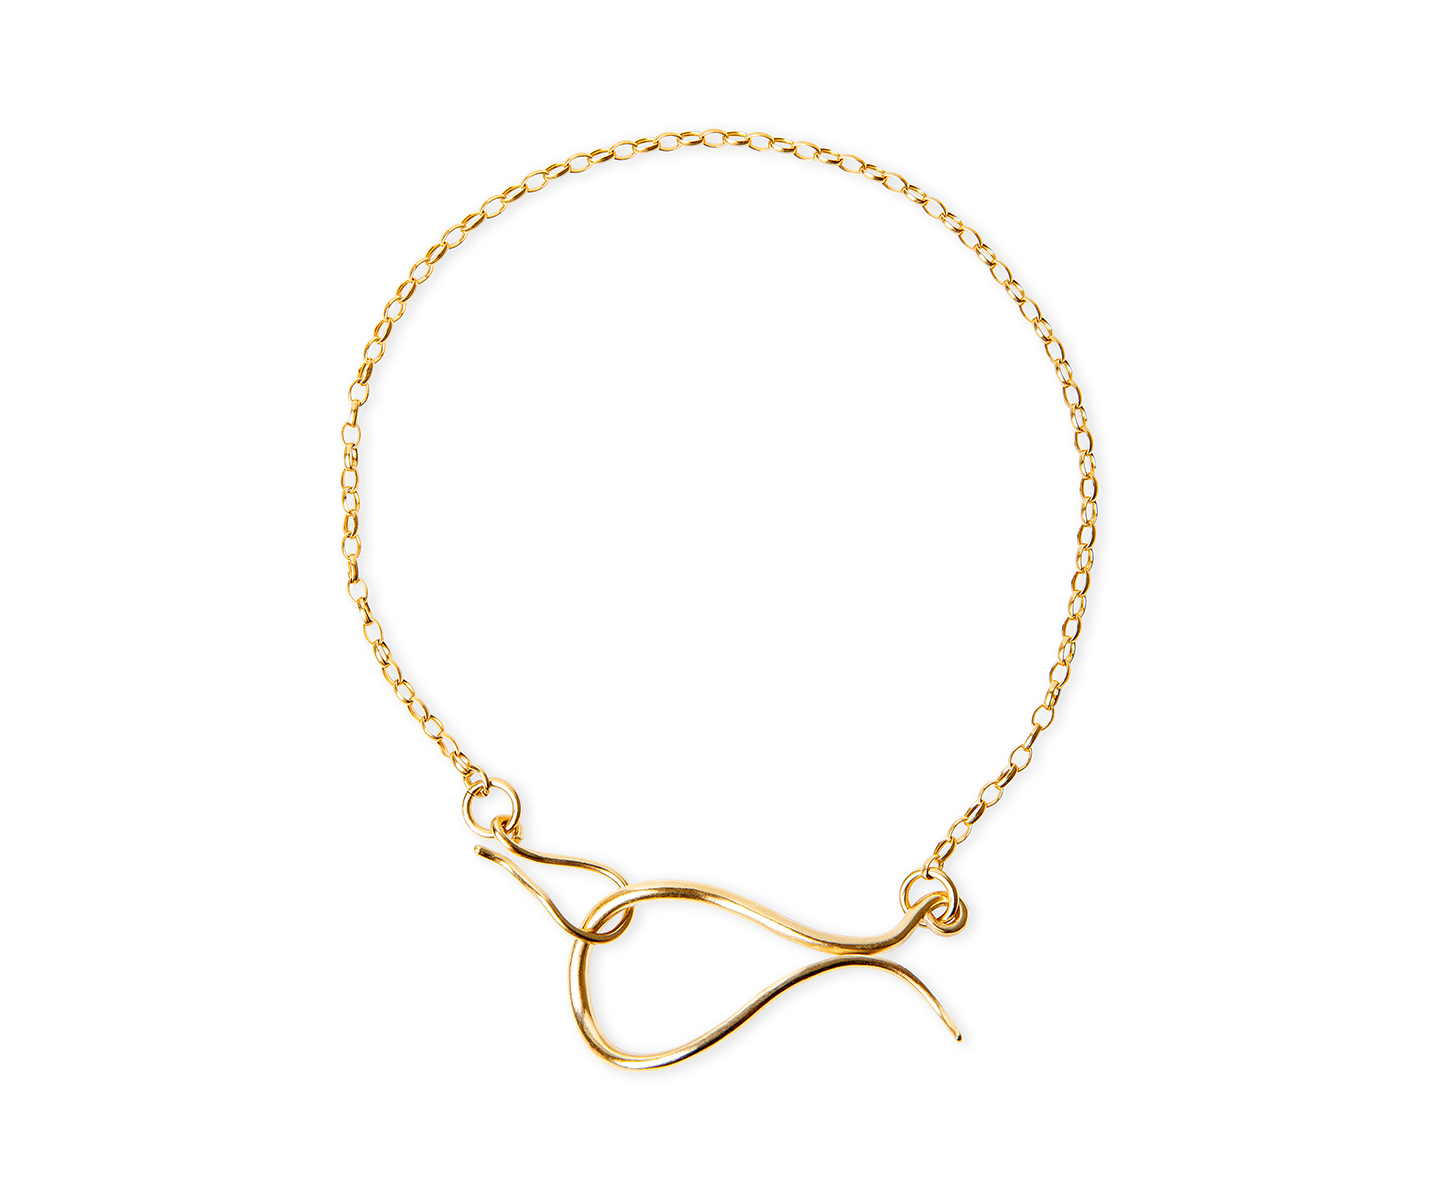 Gold choker with original clasp